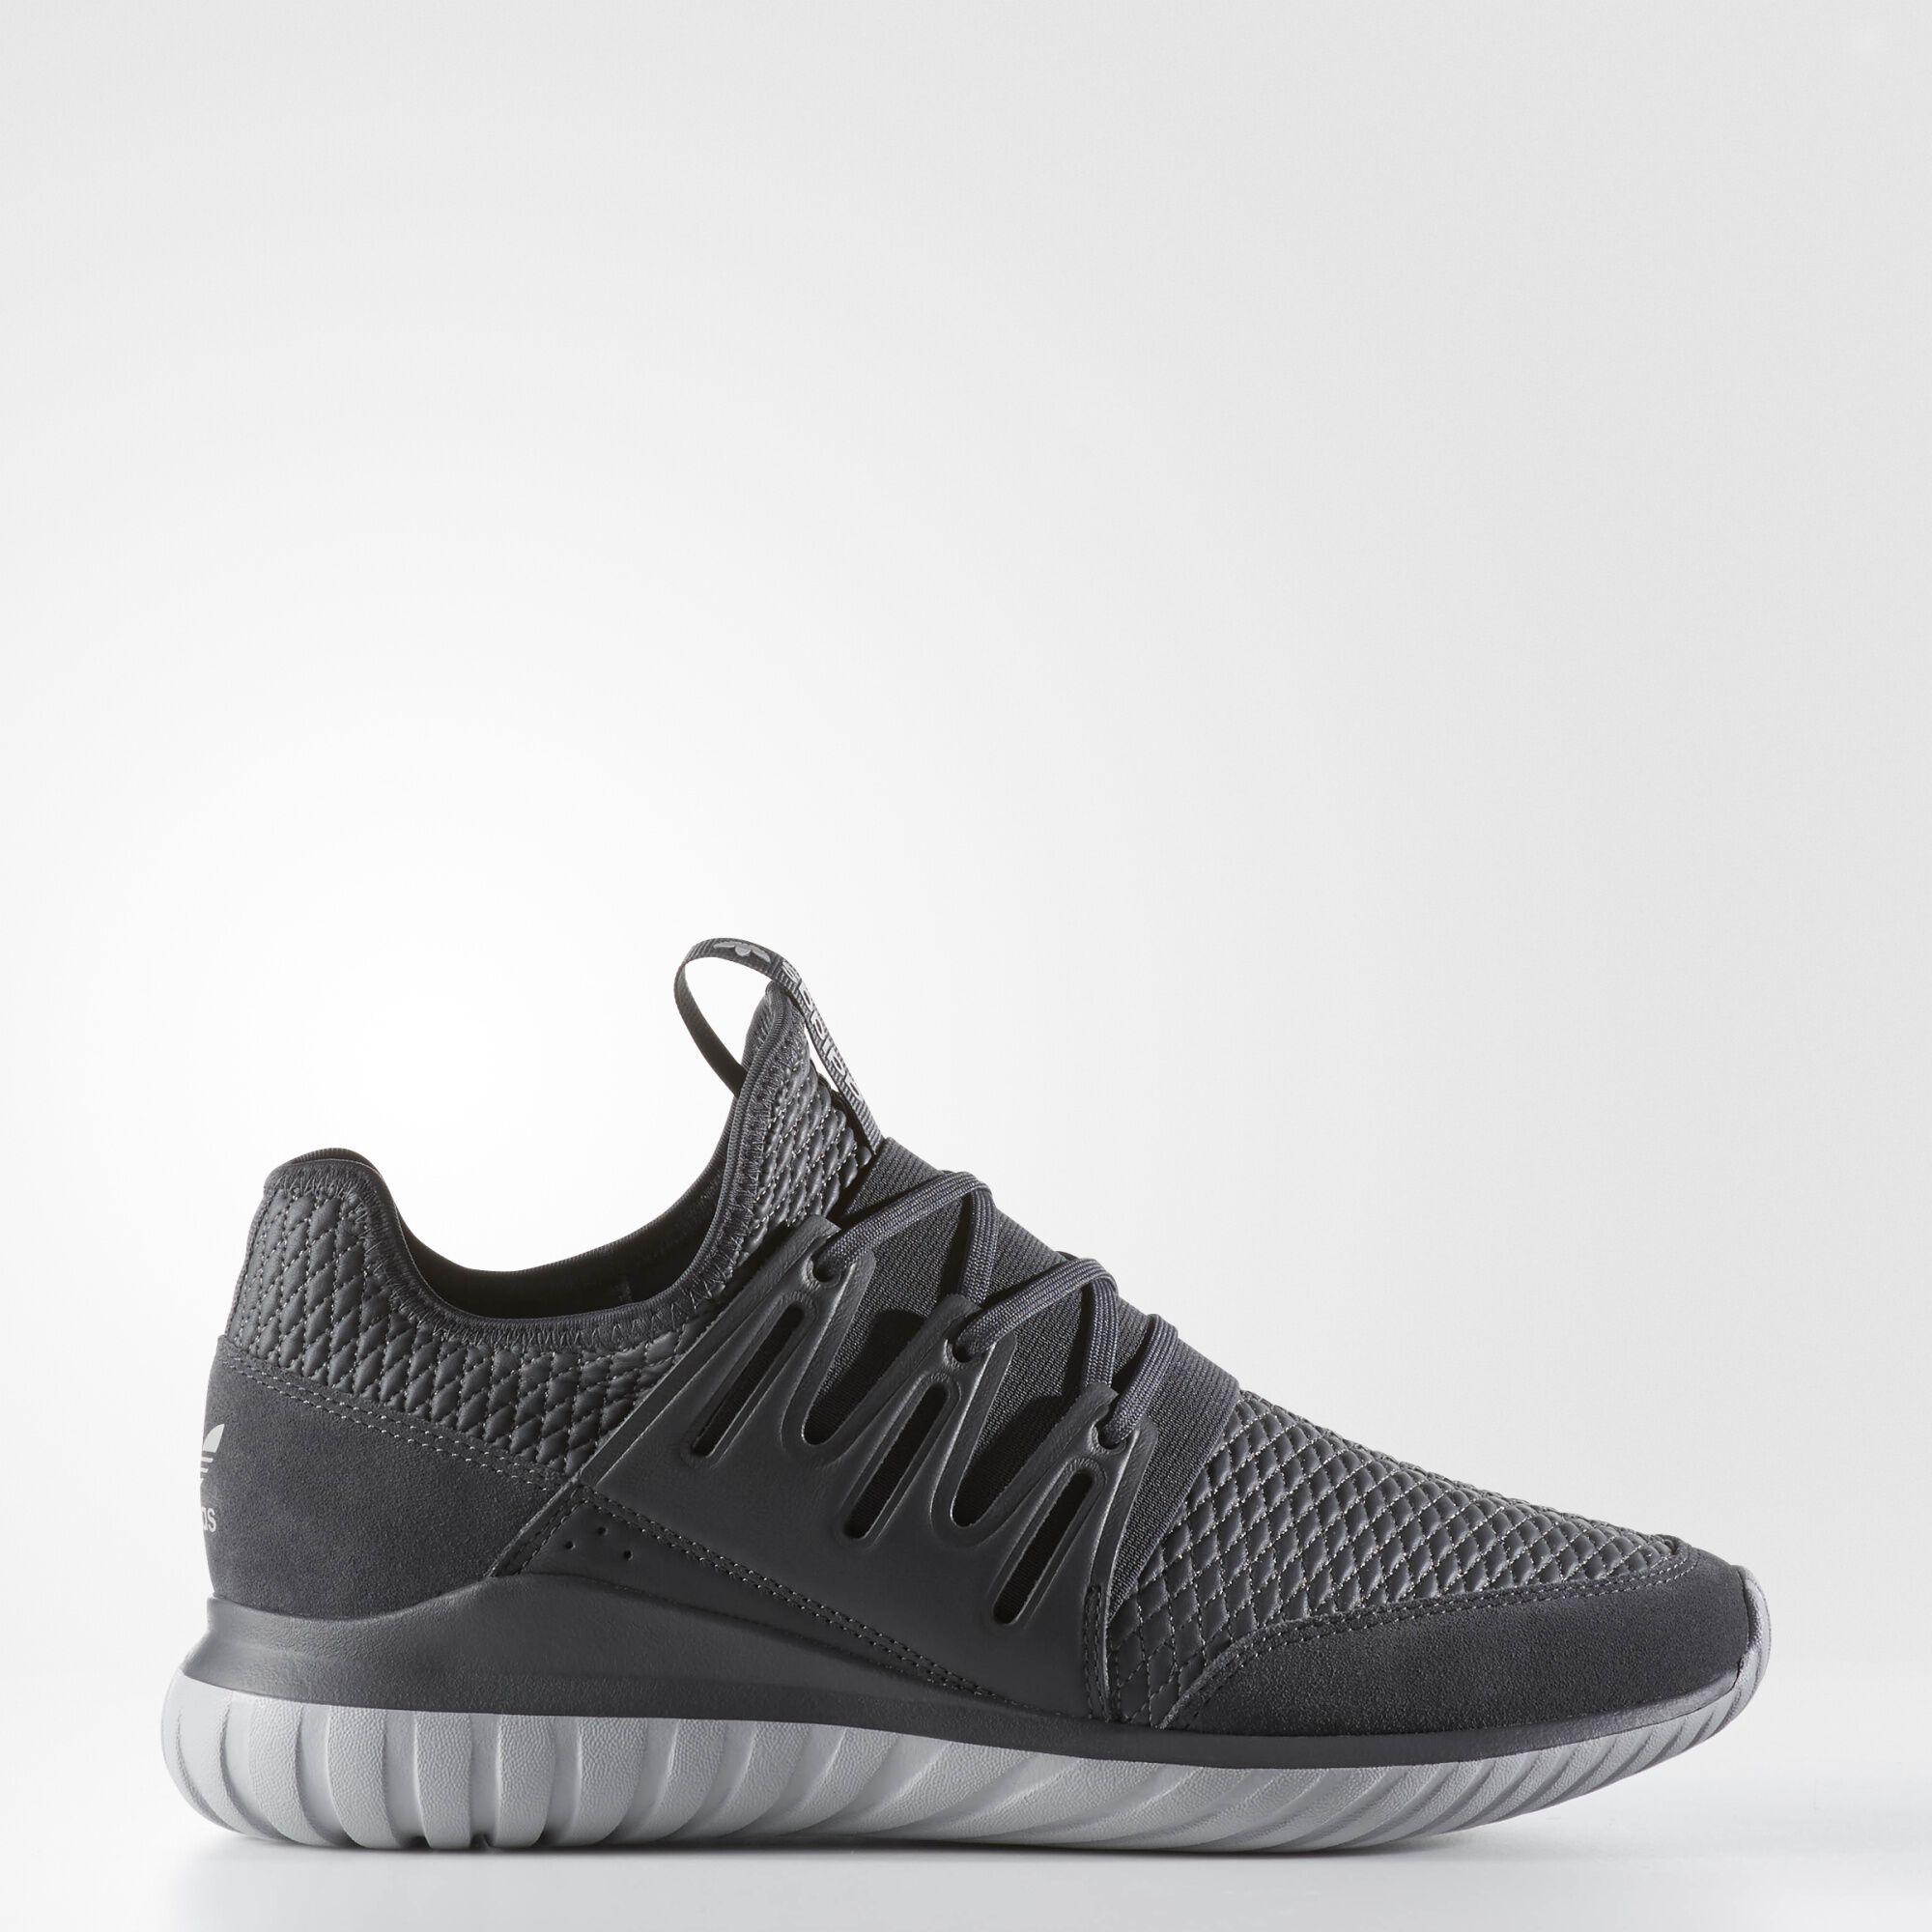 adidas tubular radial custom wallbank. Black Bedroom Furniture Sets. Home Design Ideas